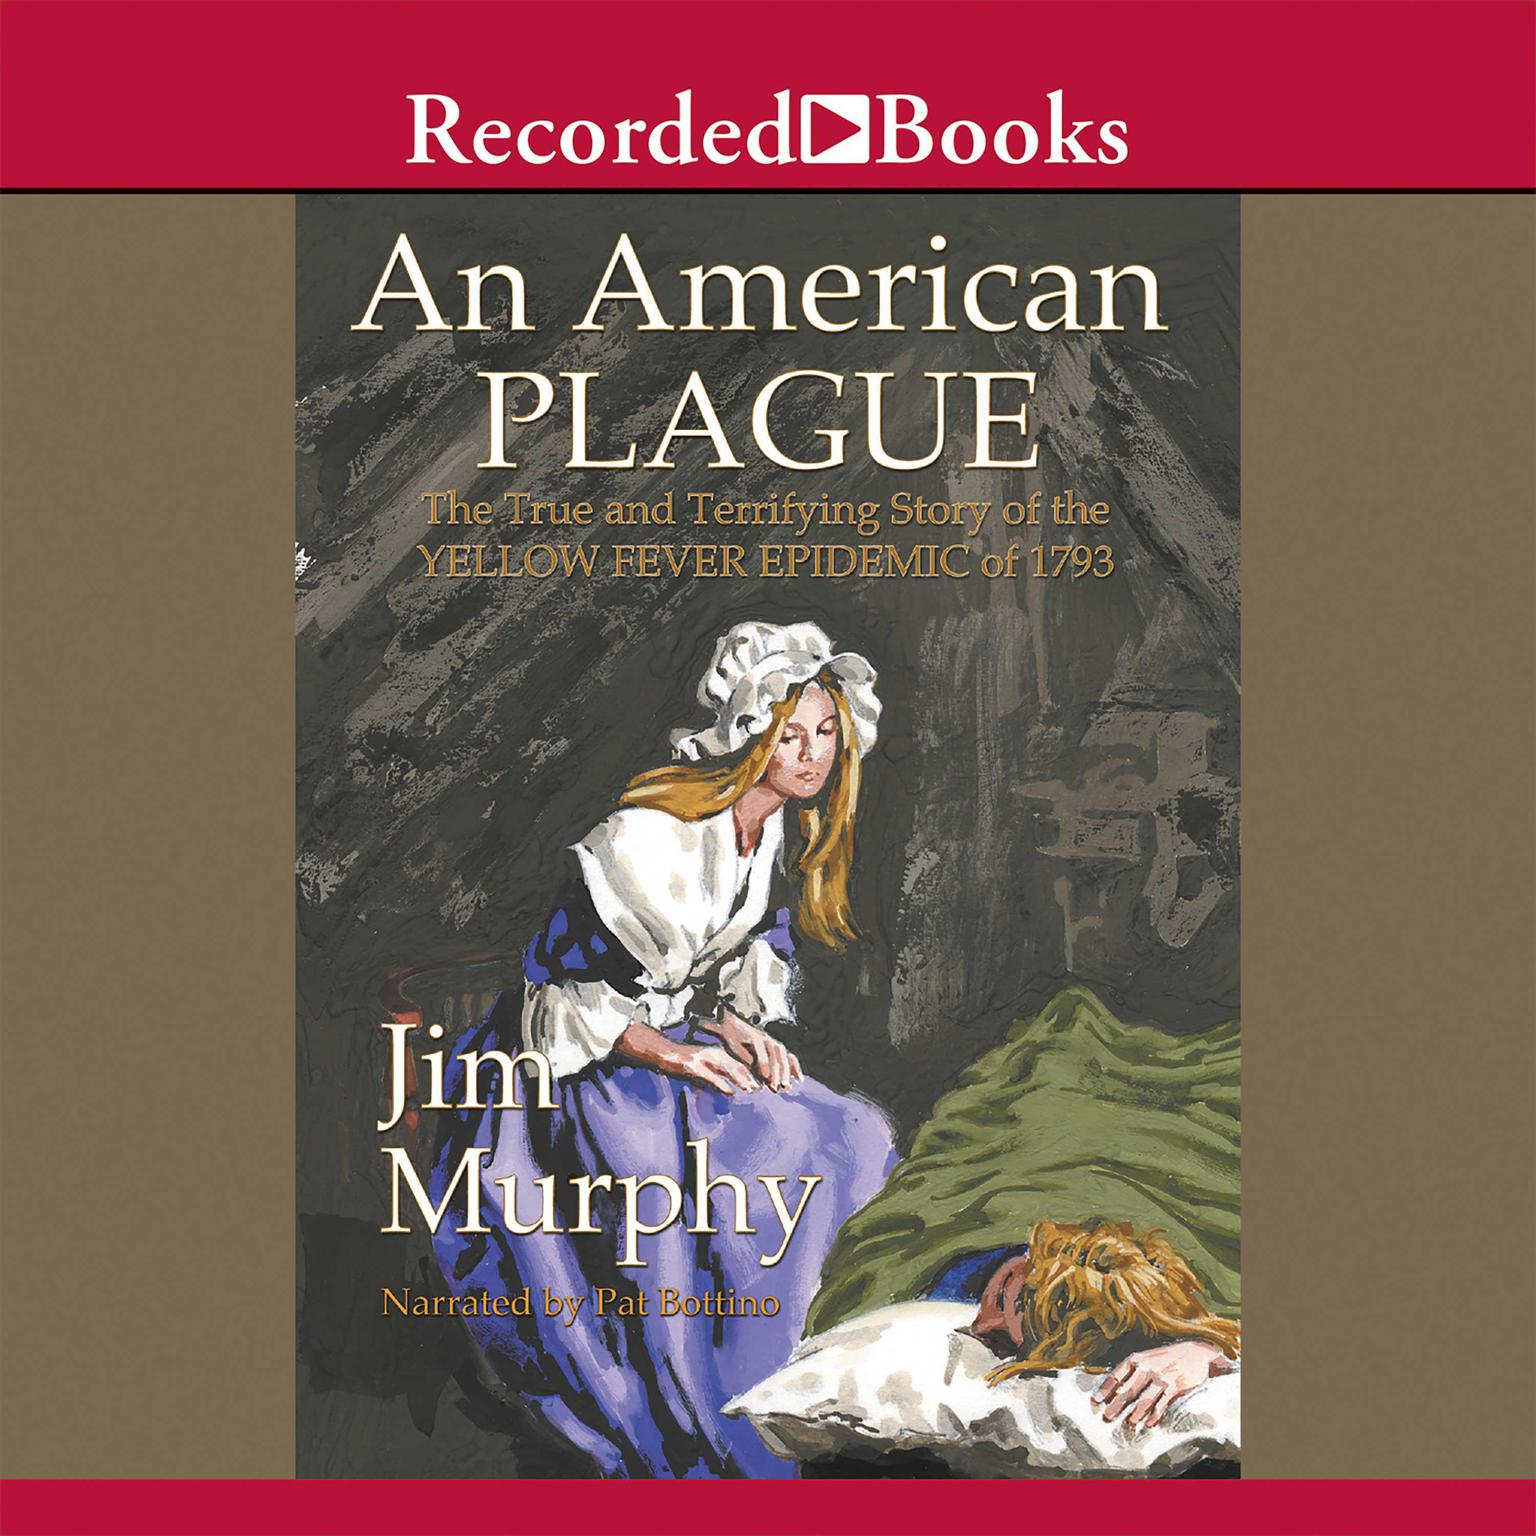 Printable An American Plague: The True and Terrifying Story of the Yellow Fever Epidemic of 1793 Audiobook Cover Art